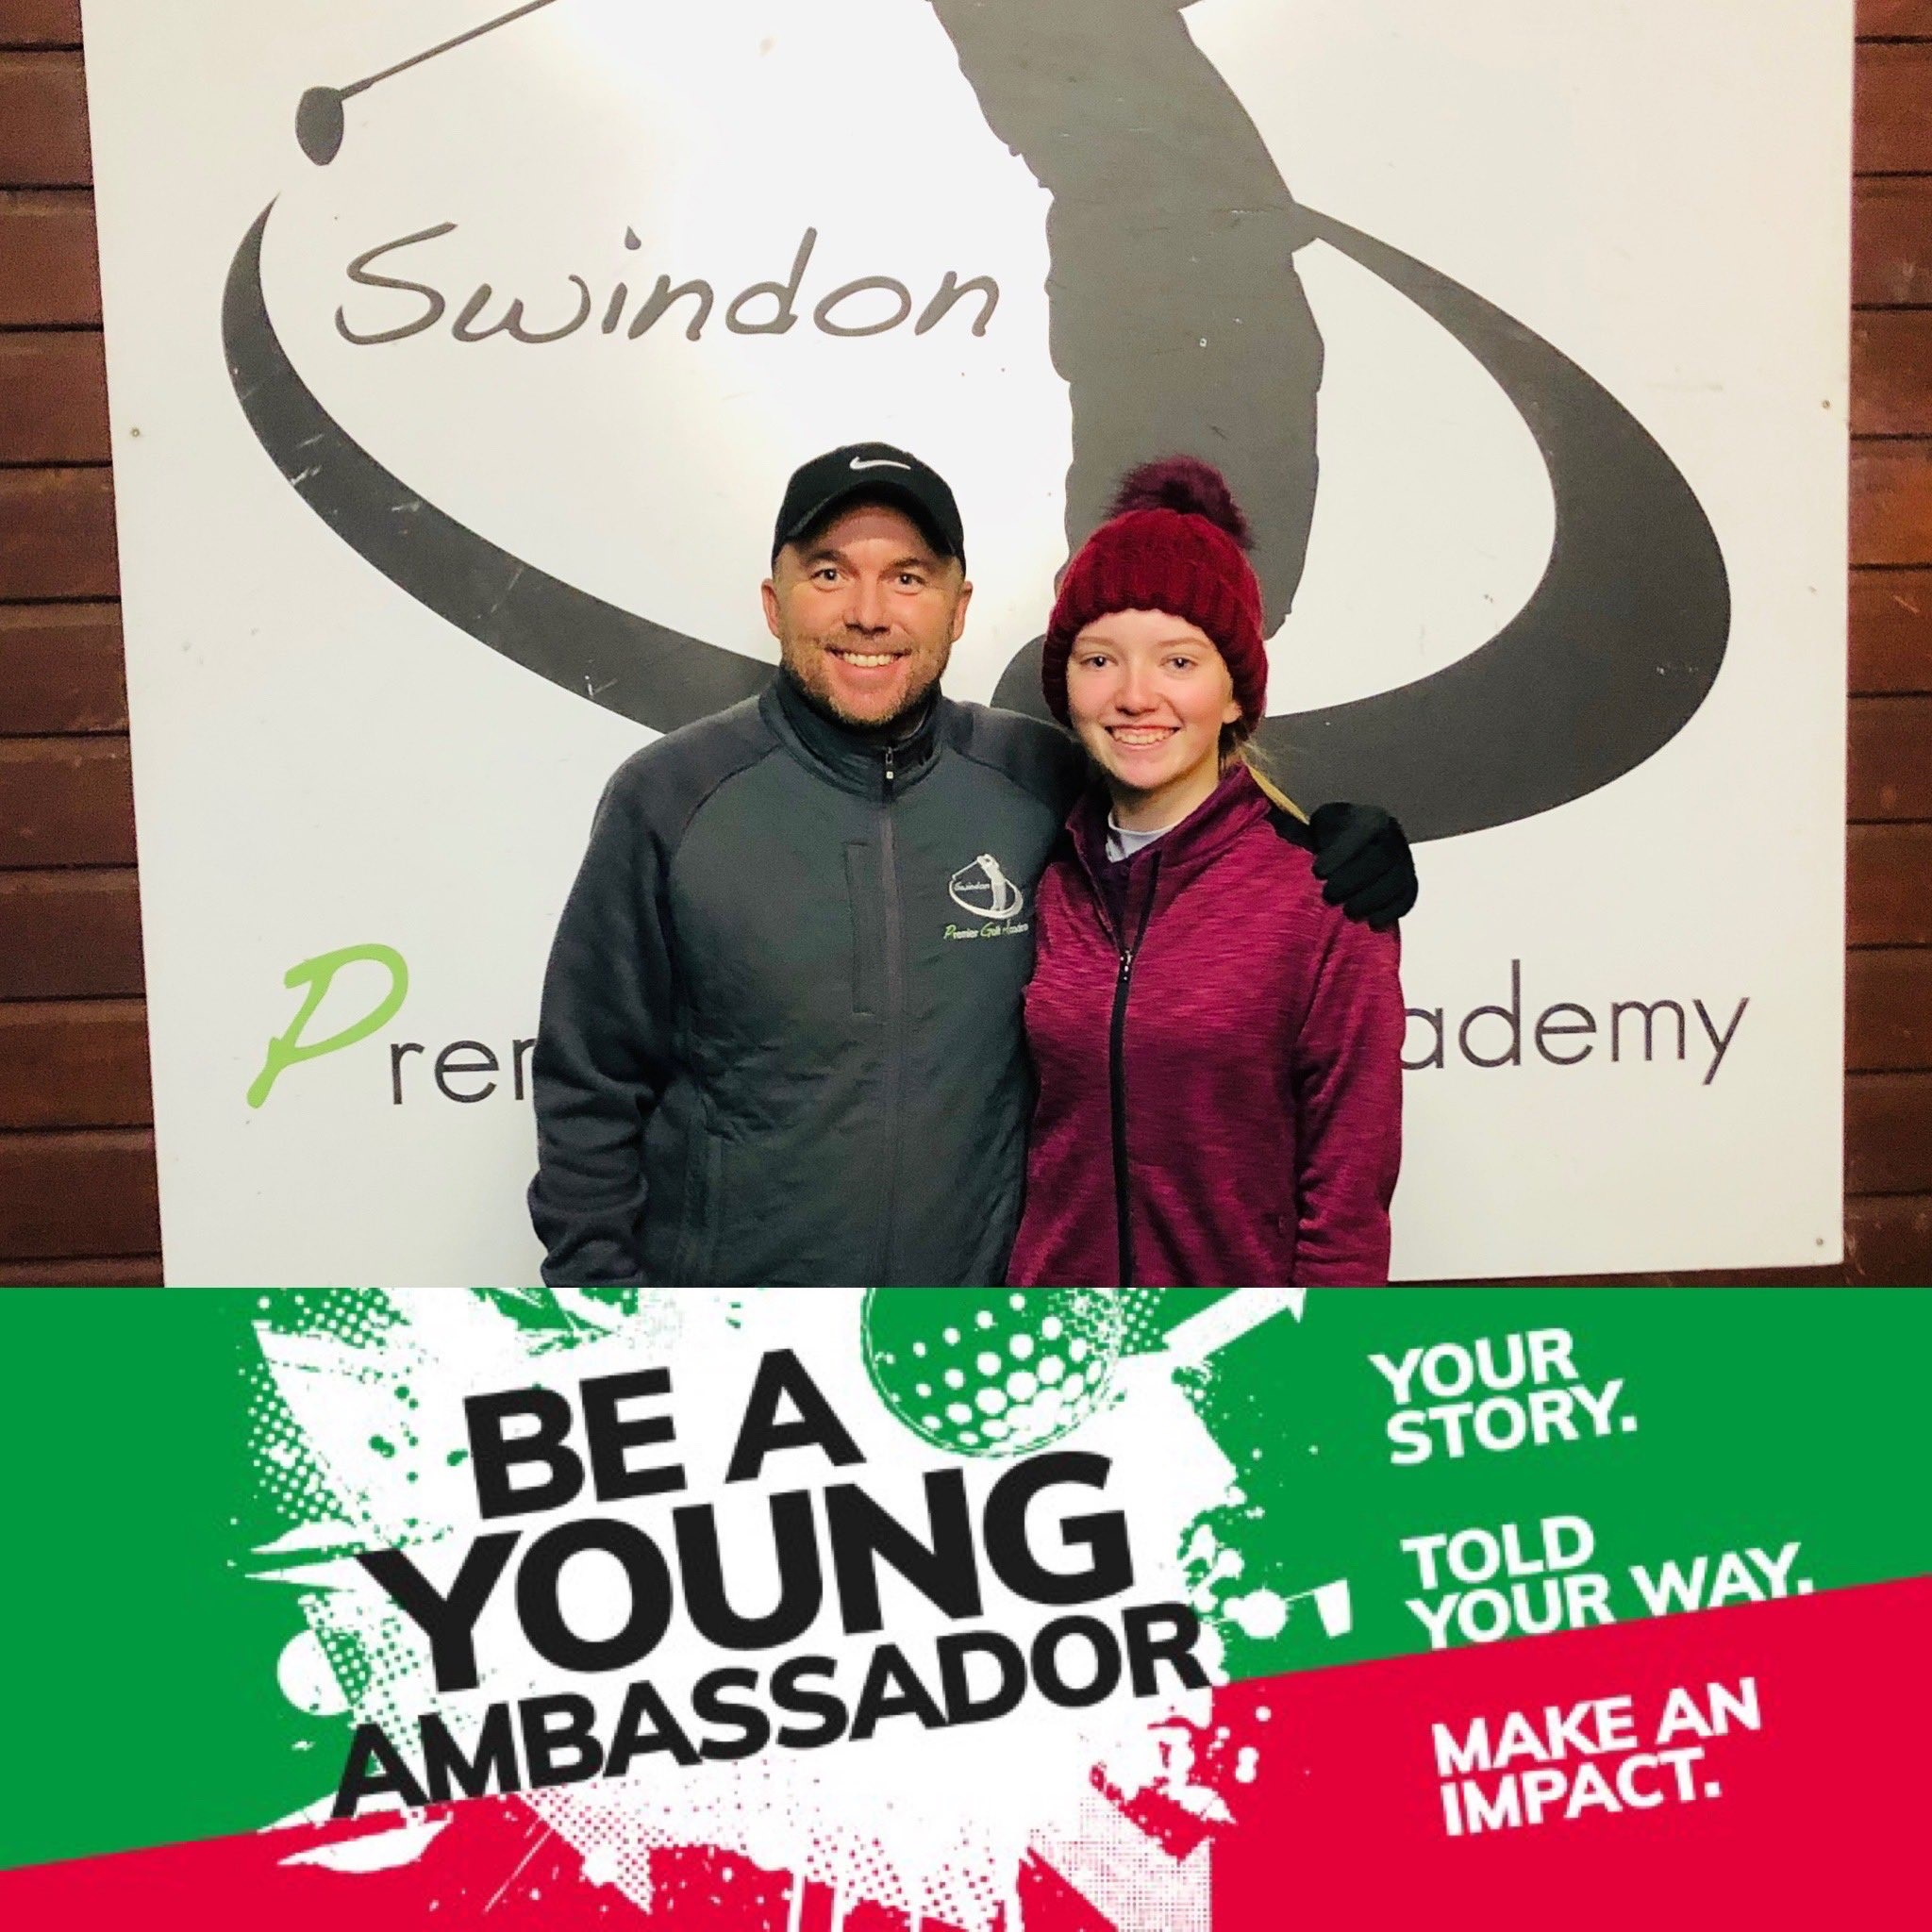 Niamh Cripps has been chosen to be one of the 6 England Golf young ambassadors for 2020